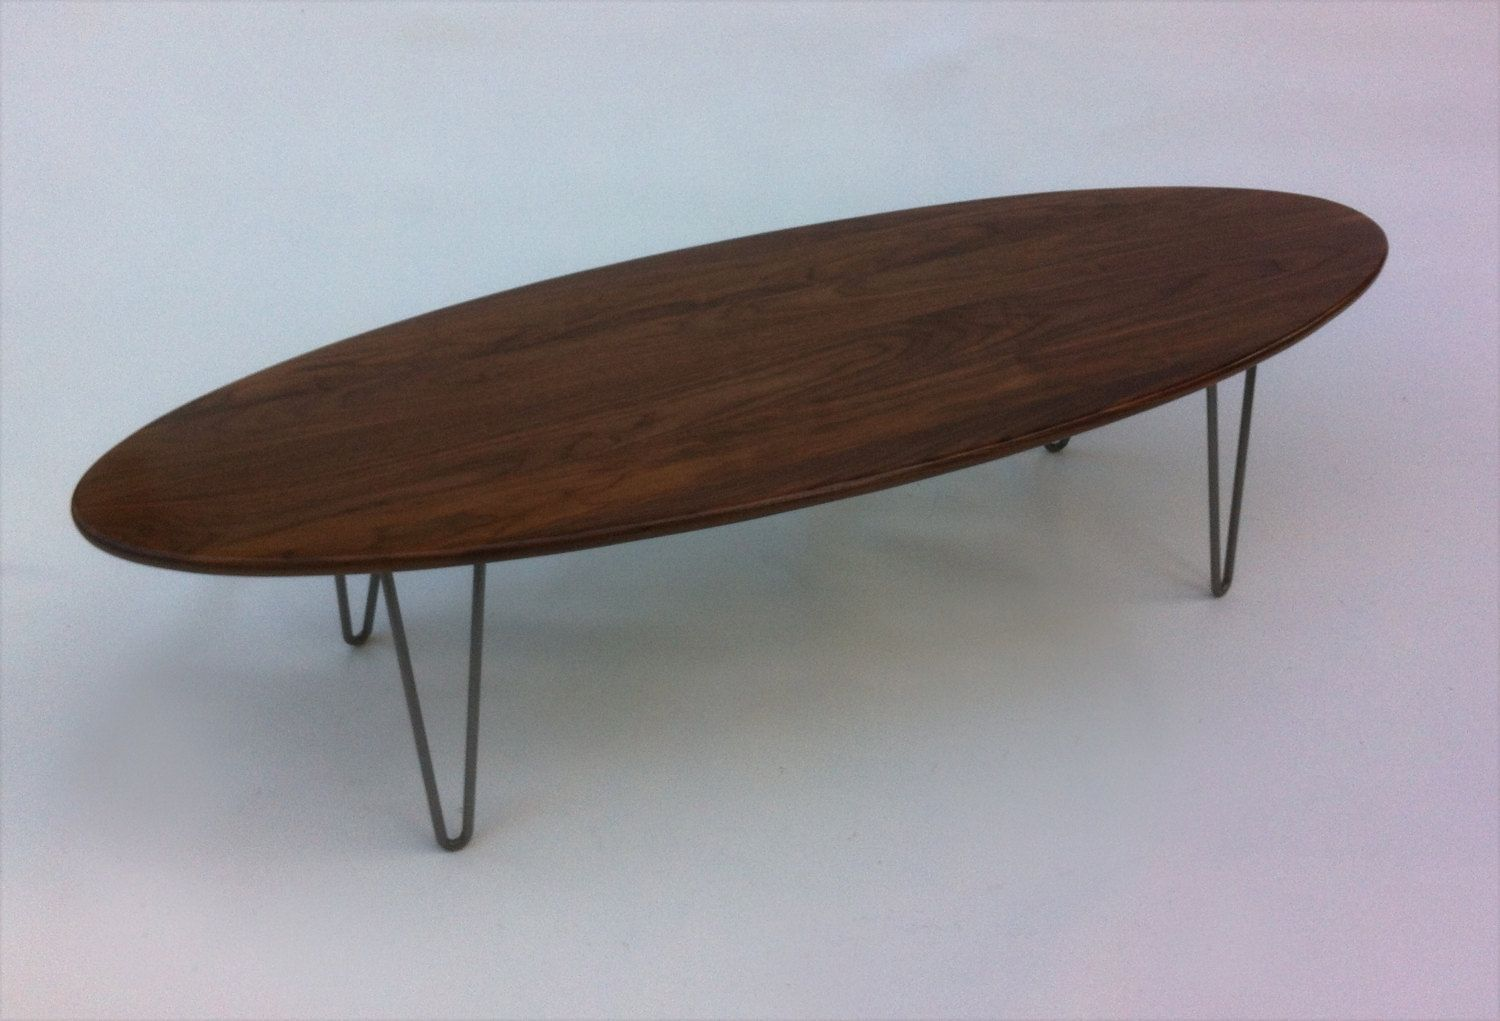 buy handmade 66 elliptical surf board shaped solid walnut mid century modern coffee table with. Black Bedroom Furniture Sets. Home Design Ideas